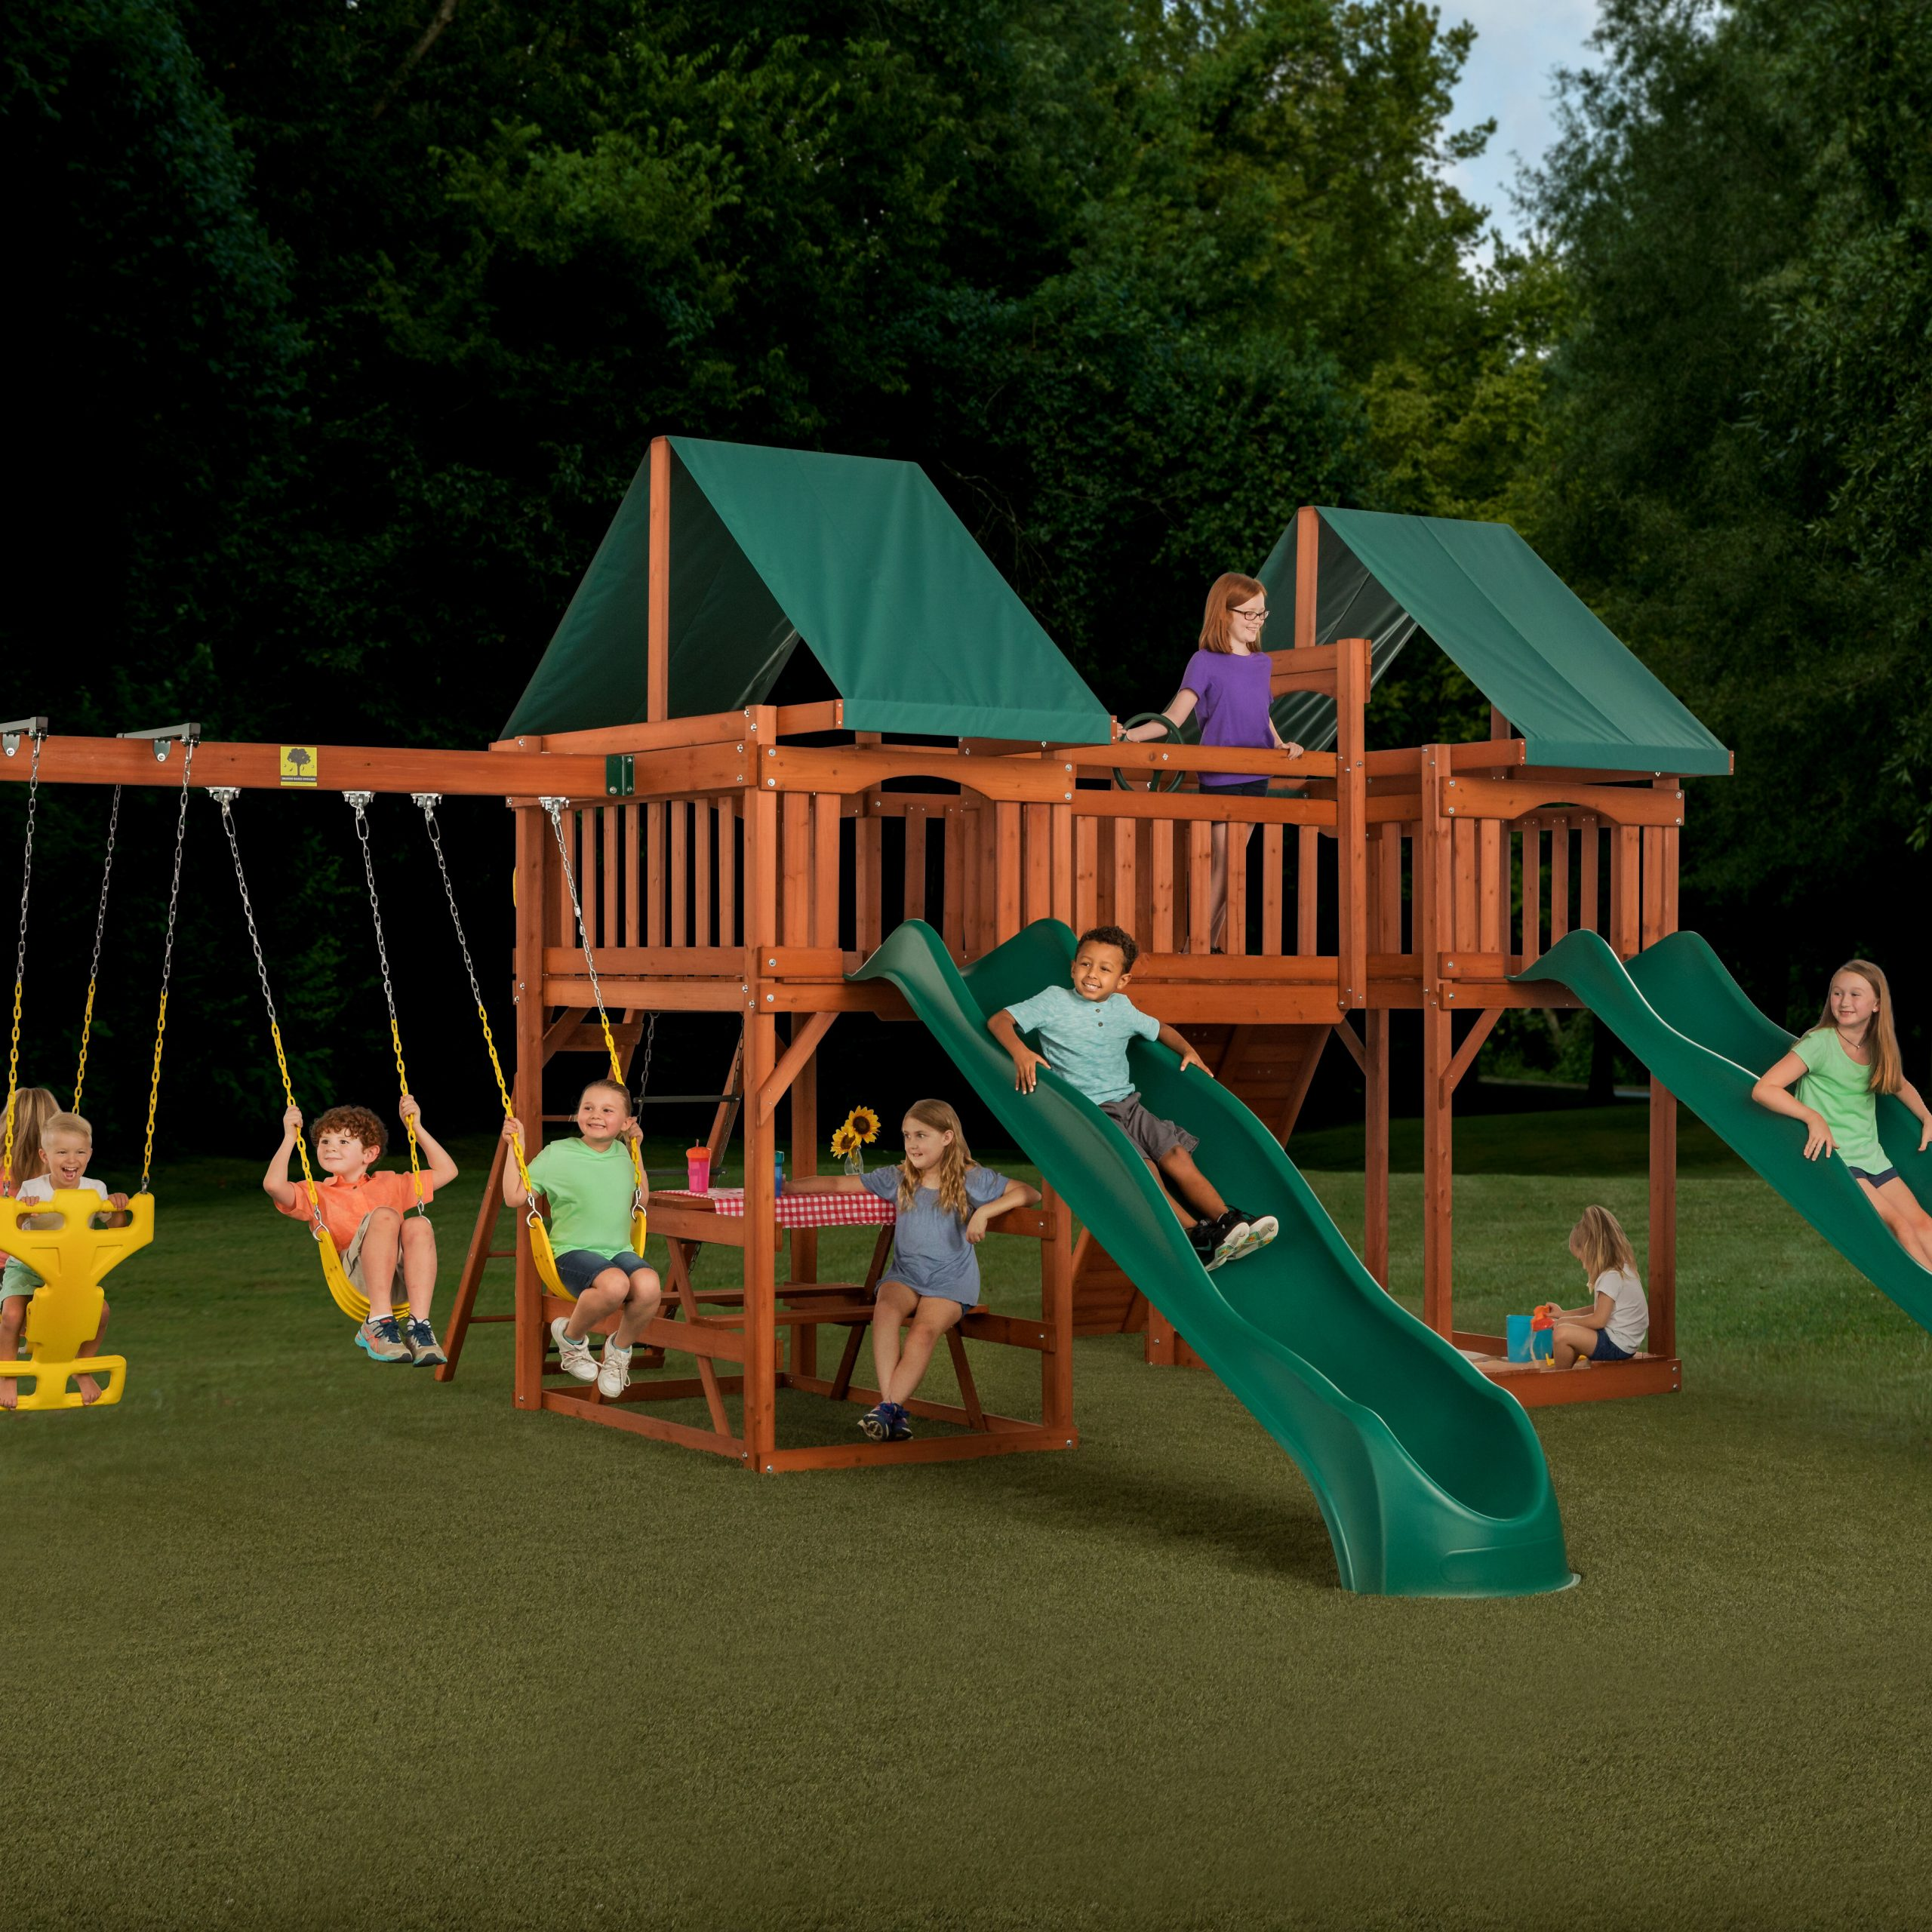 Sequoia Swing Set Throughout Most Current Dual Rider Glider Swings With Soft Touch Rope (View 18 of 25)